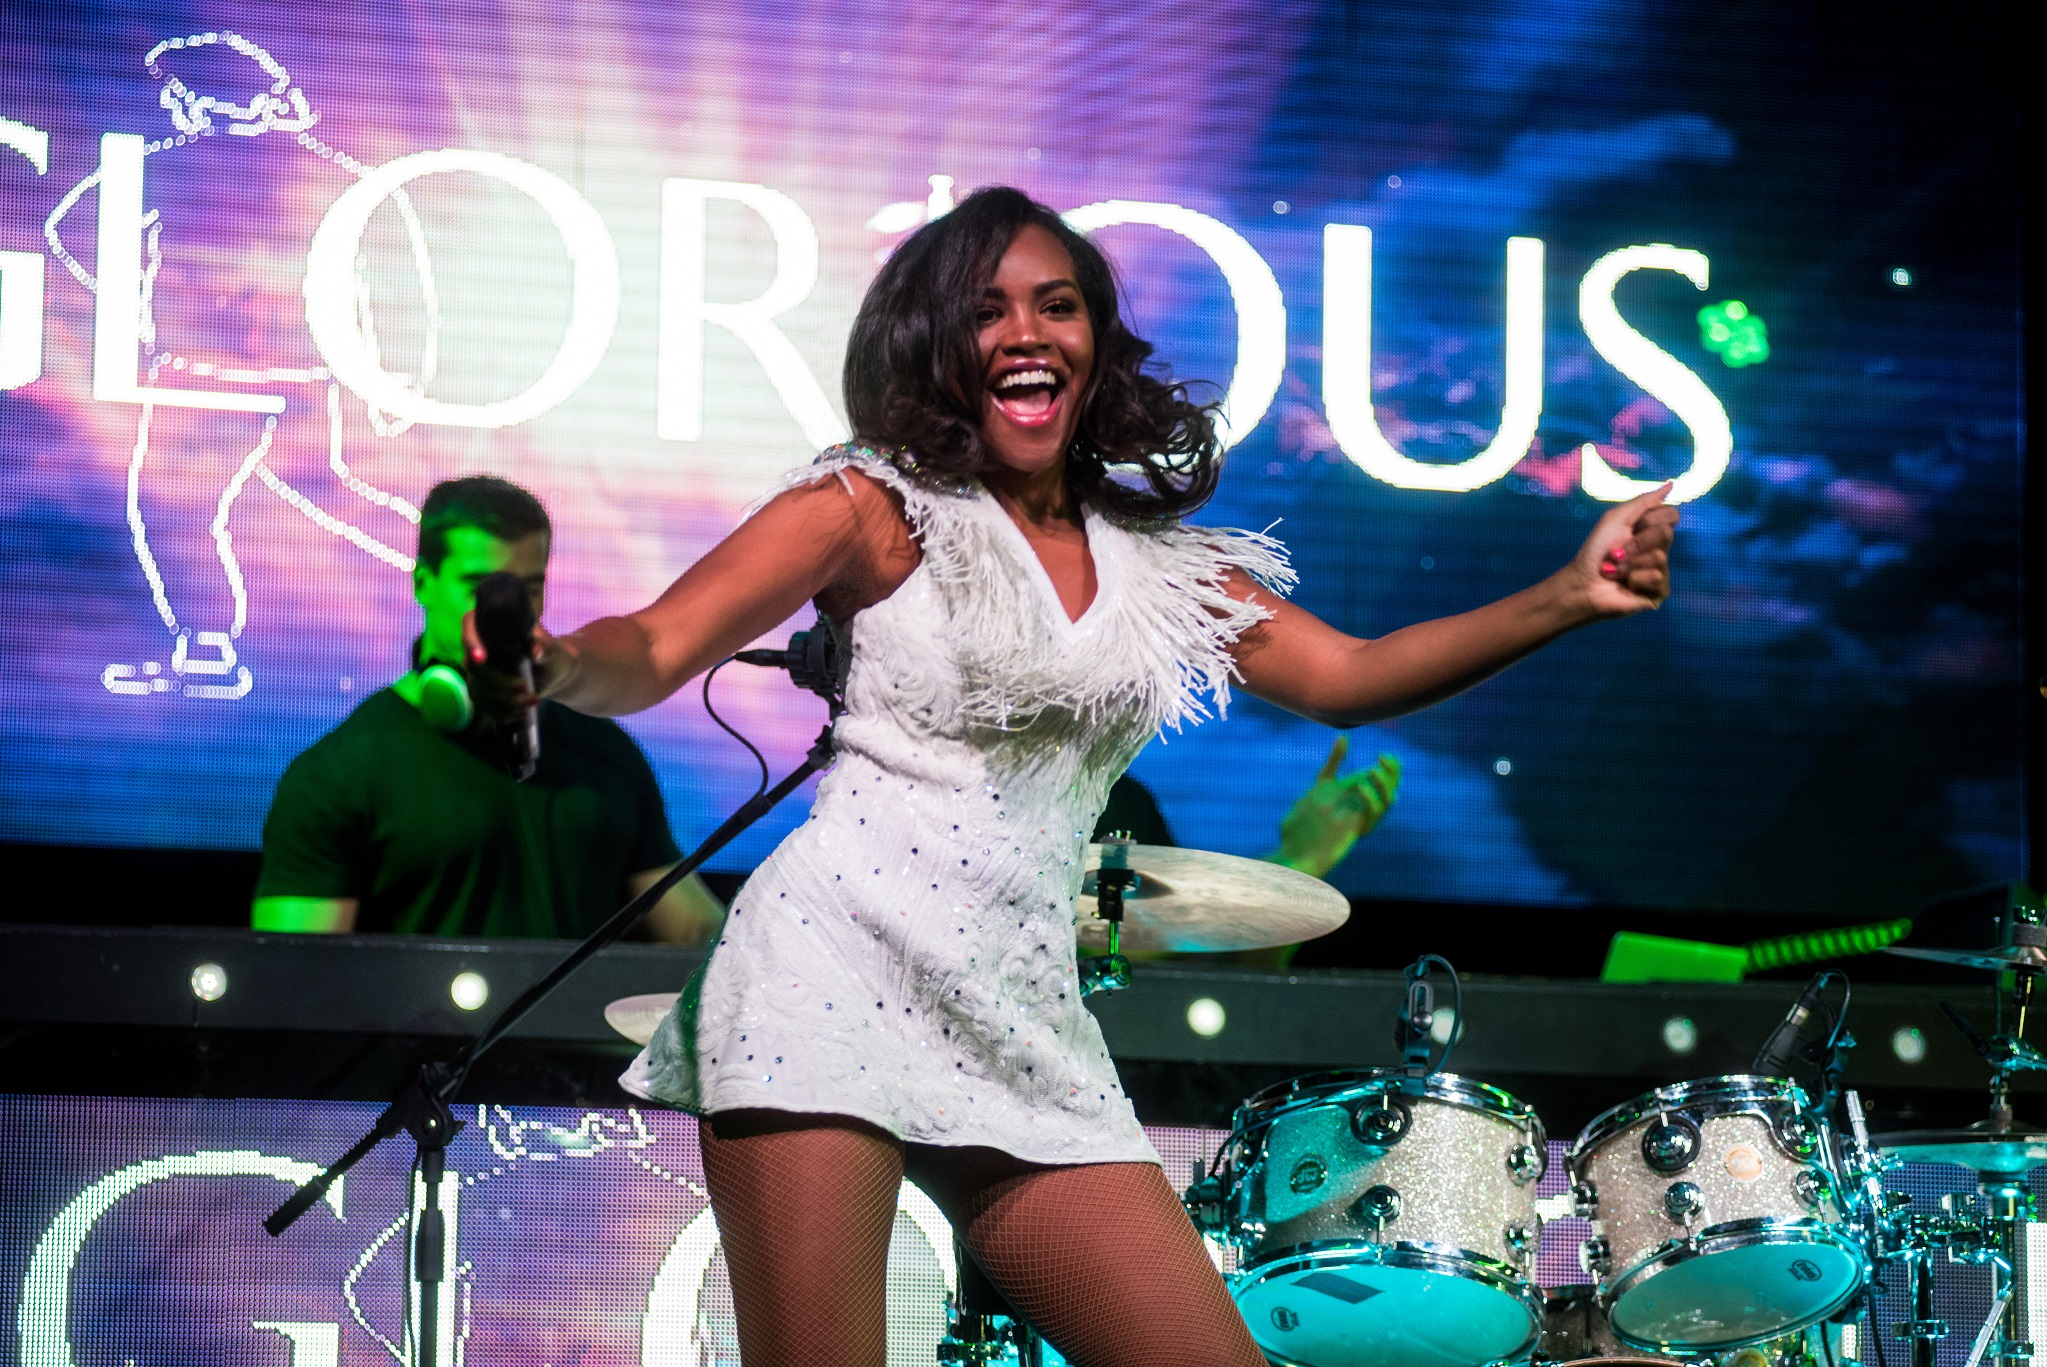 Glorious-Singer-Livetronica Drummer-Producer-Songwriter-Marquee-Nightclub-Video-New York-NY-42lr.jpg